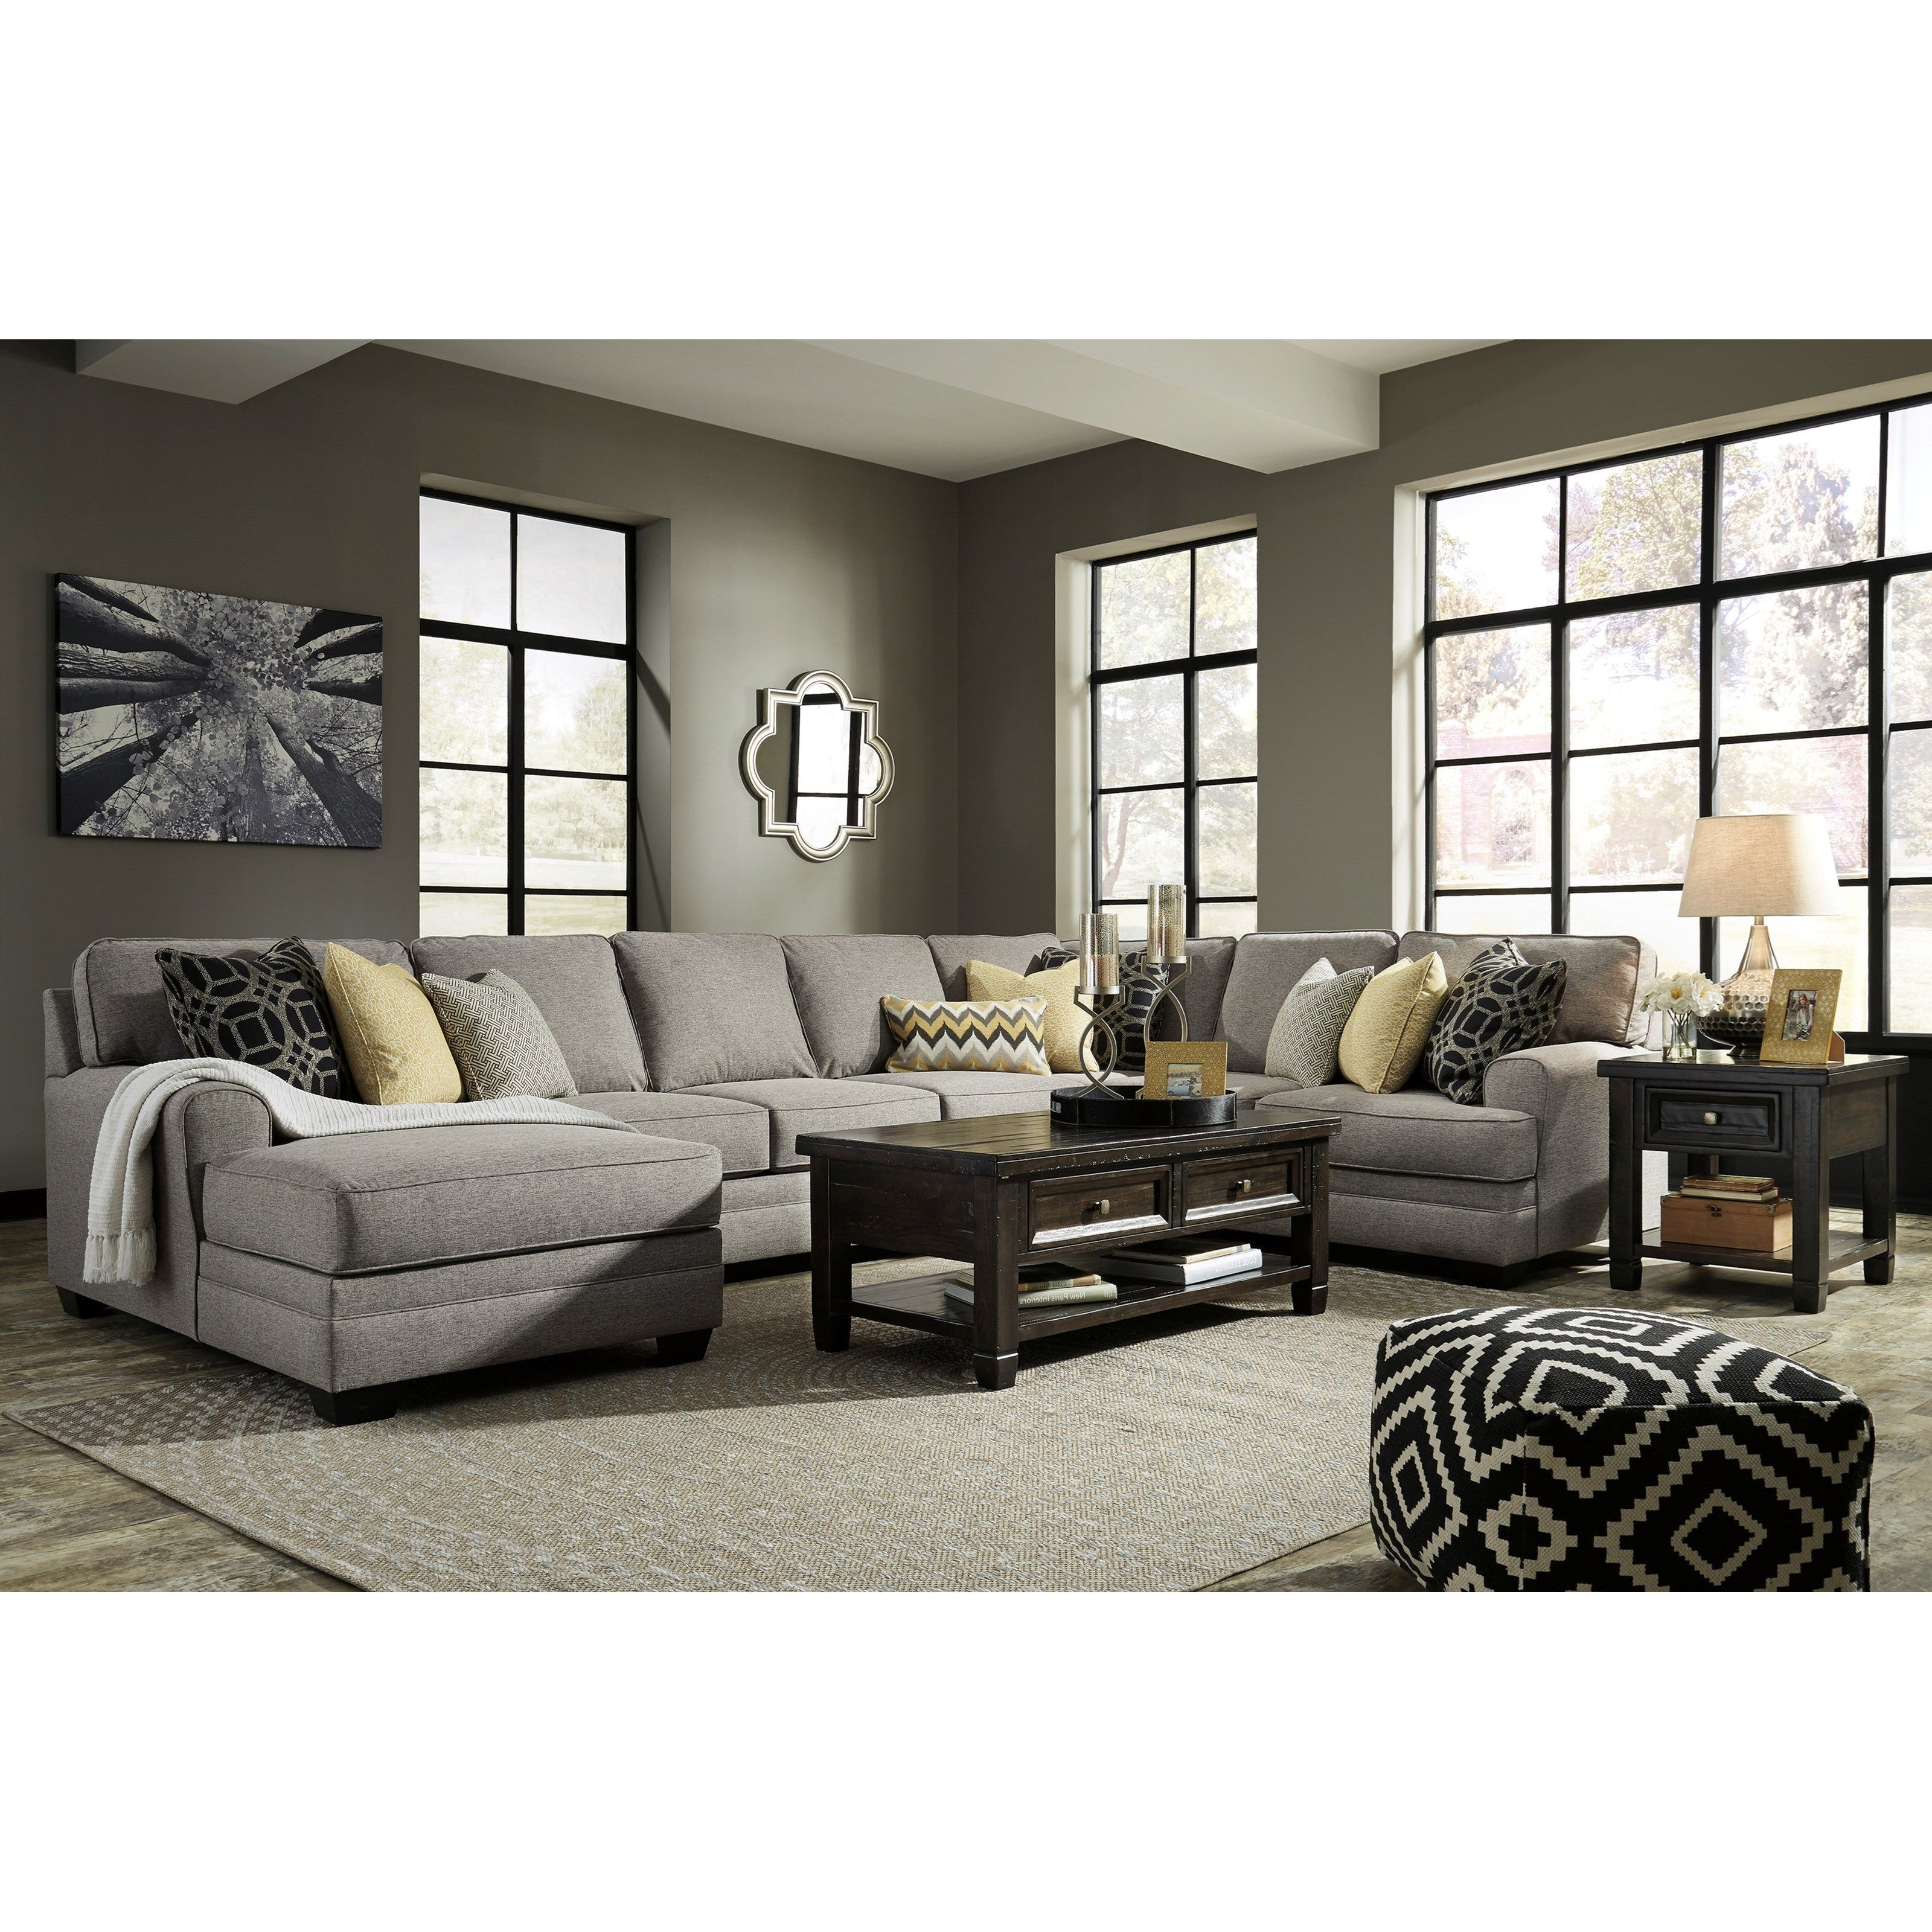 Cresson Contemporary 4 Piece Sectional With Chaise Amp Armless Sofa By Benchcraft In 2020 Cheap